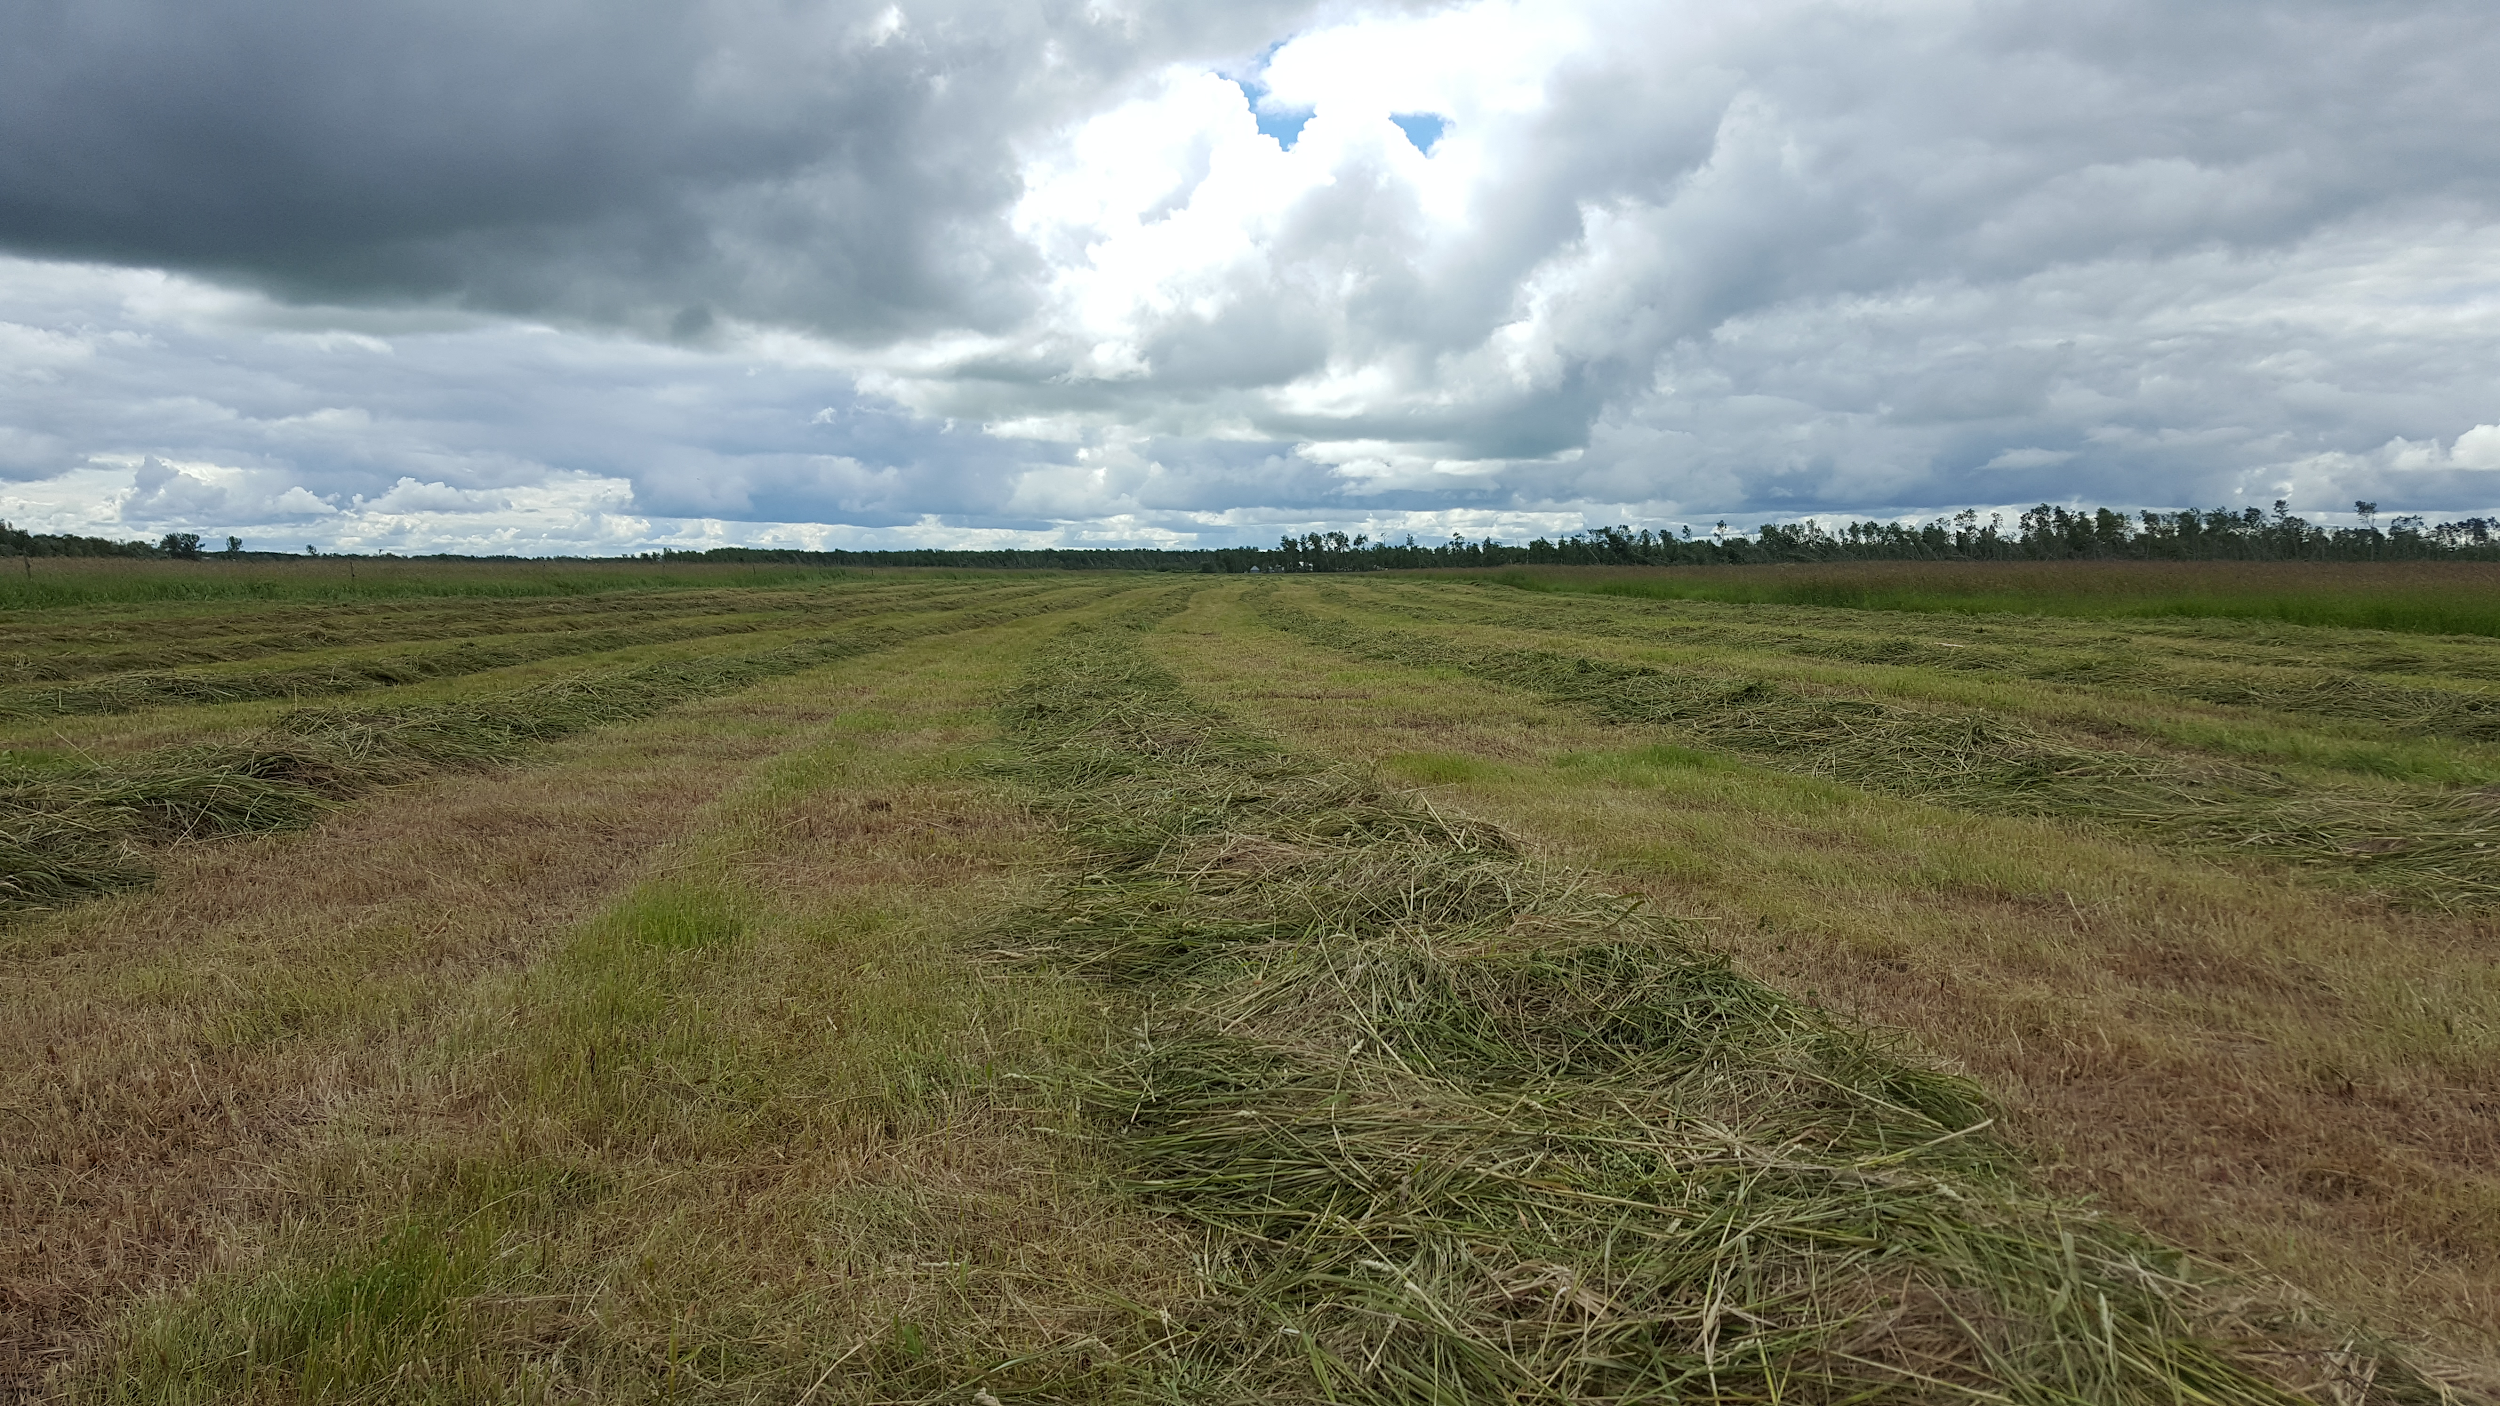 The cheapest way to deal with salinity - put it in hay